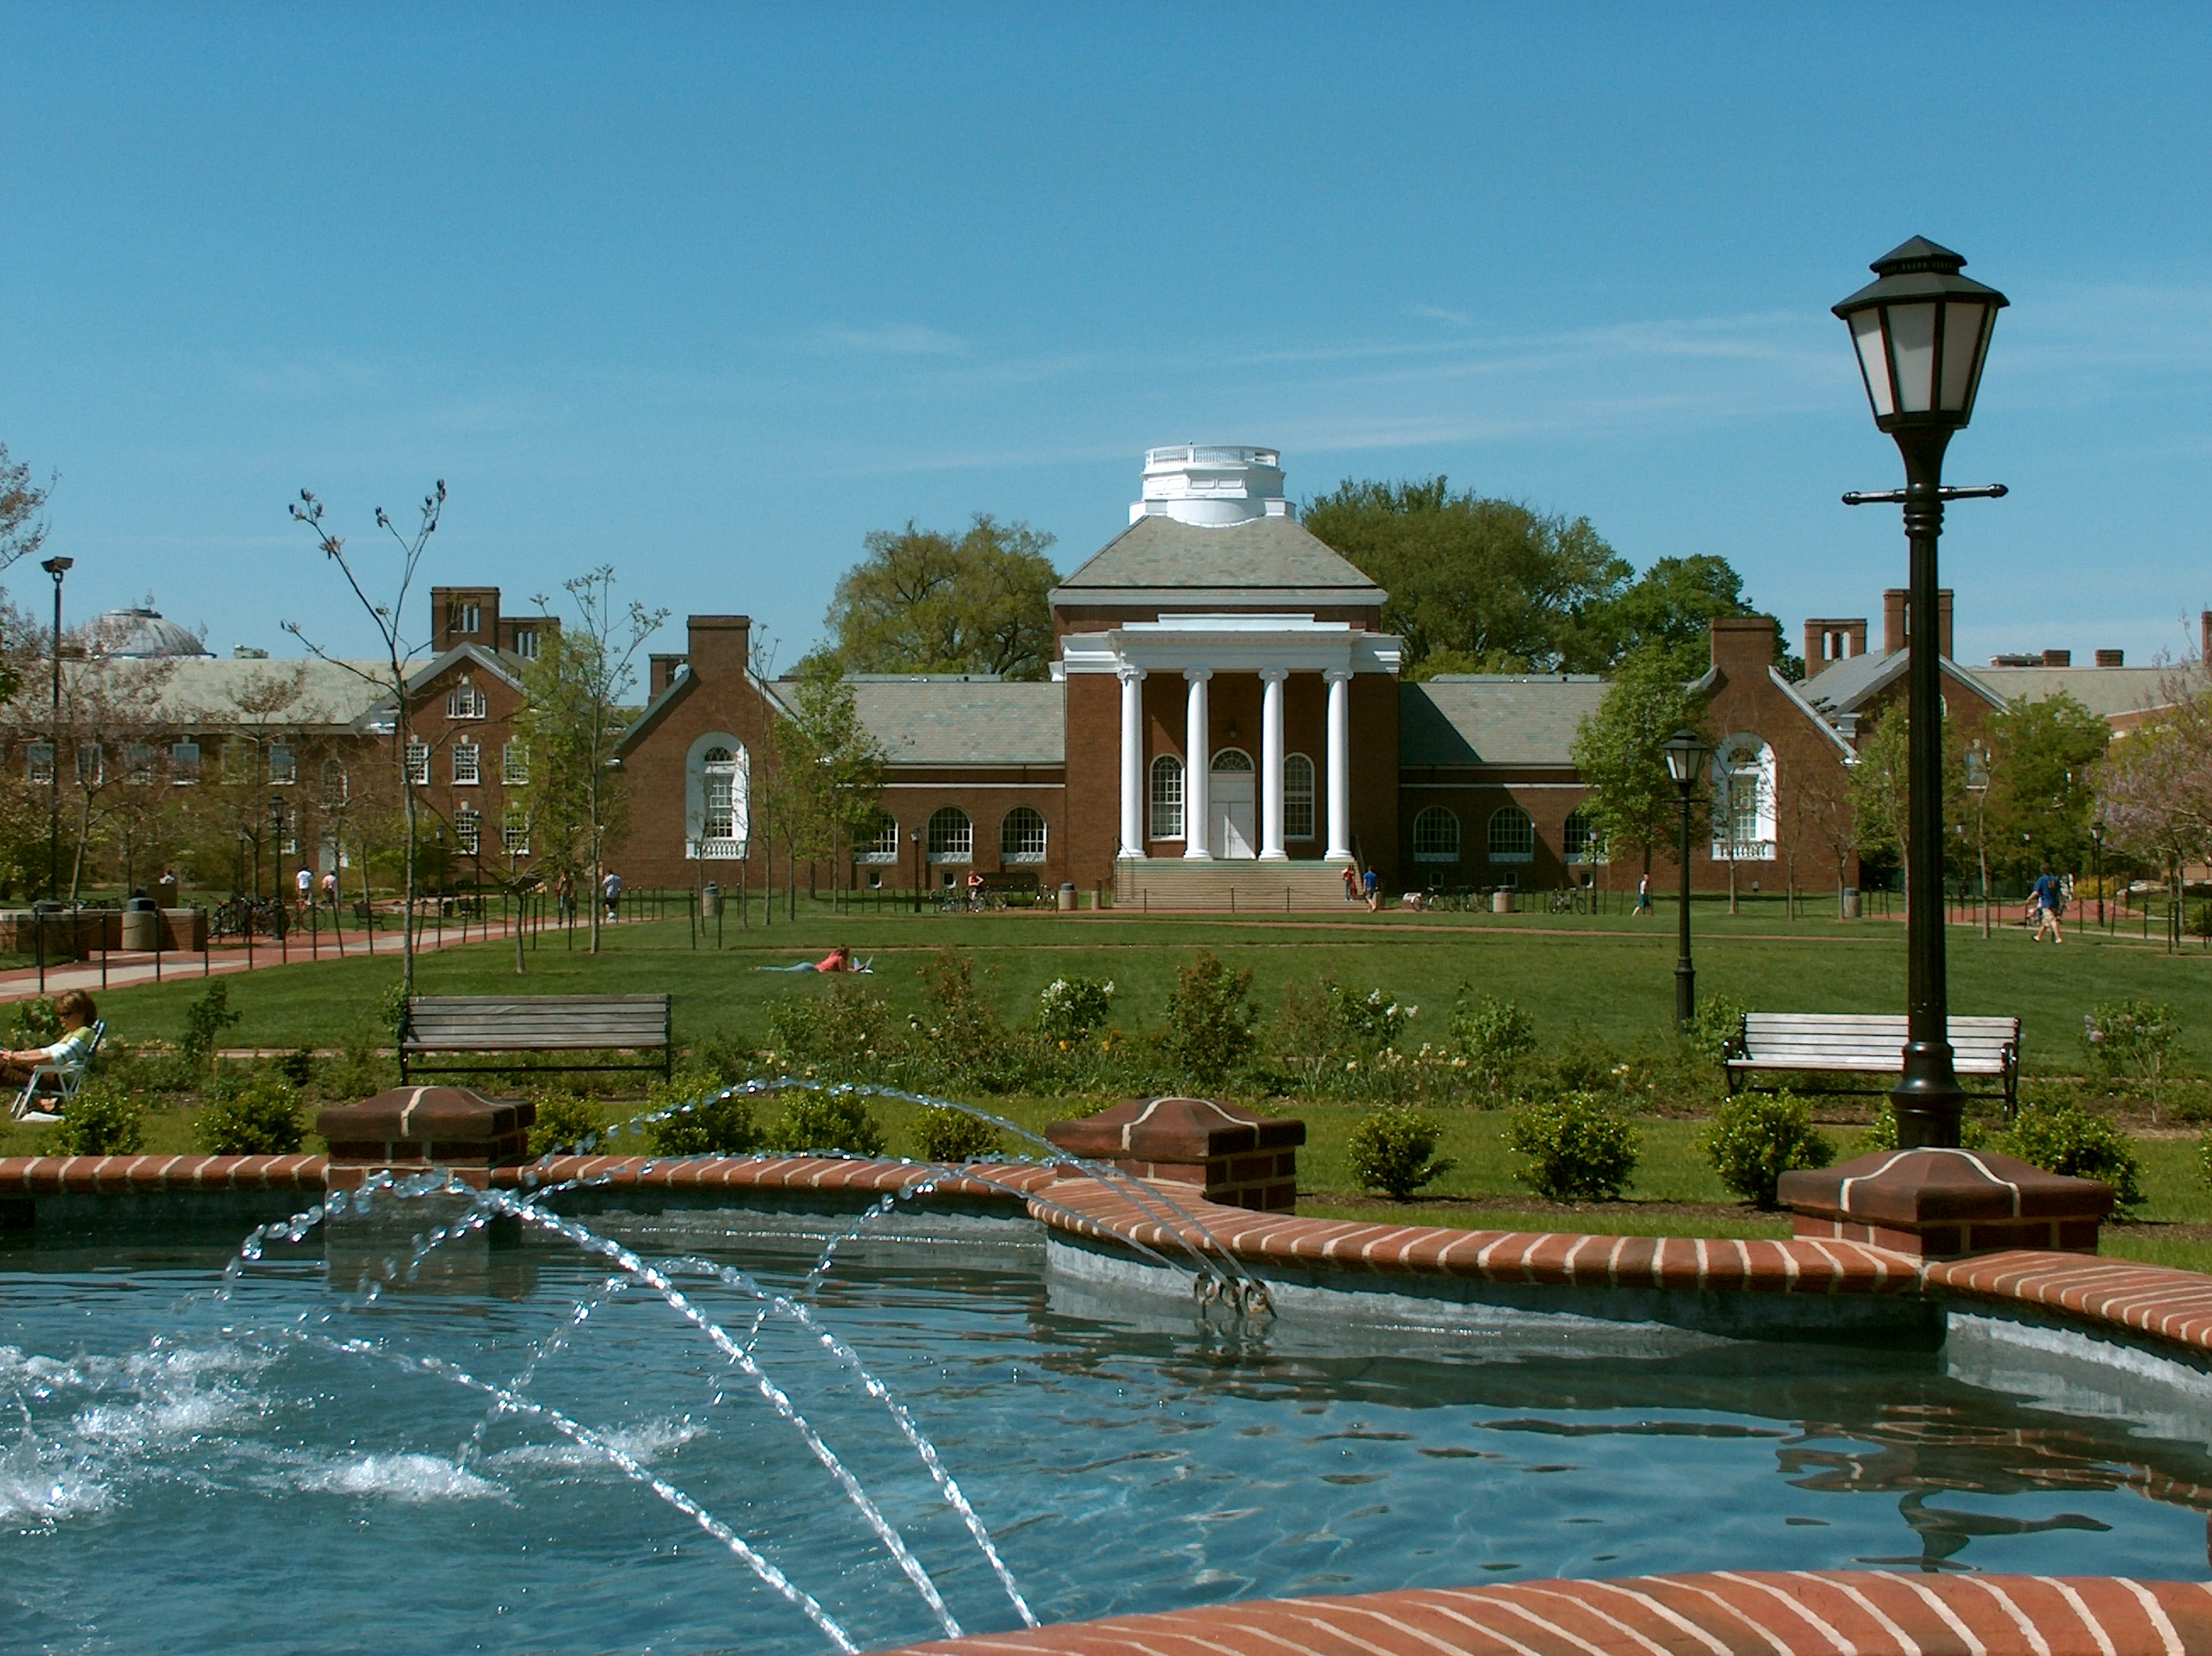 magnolia fountain in foreground, memorial hall in background